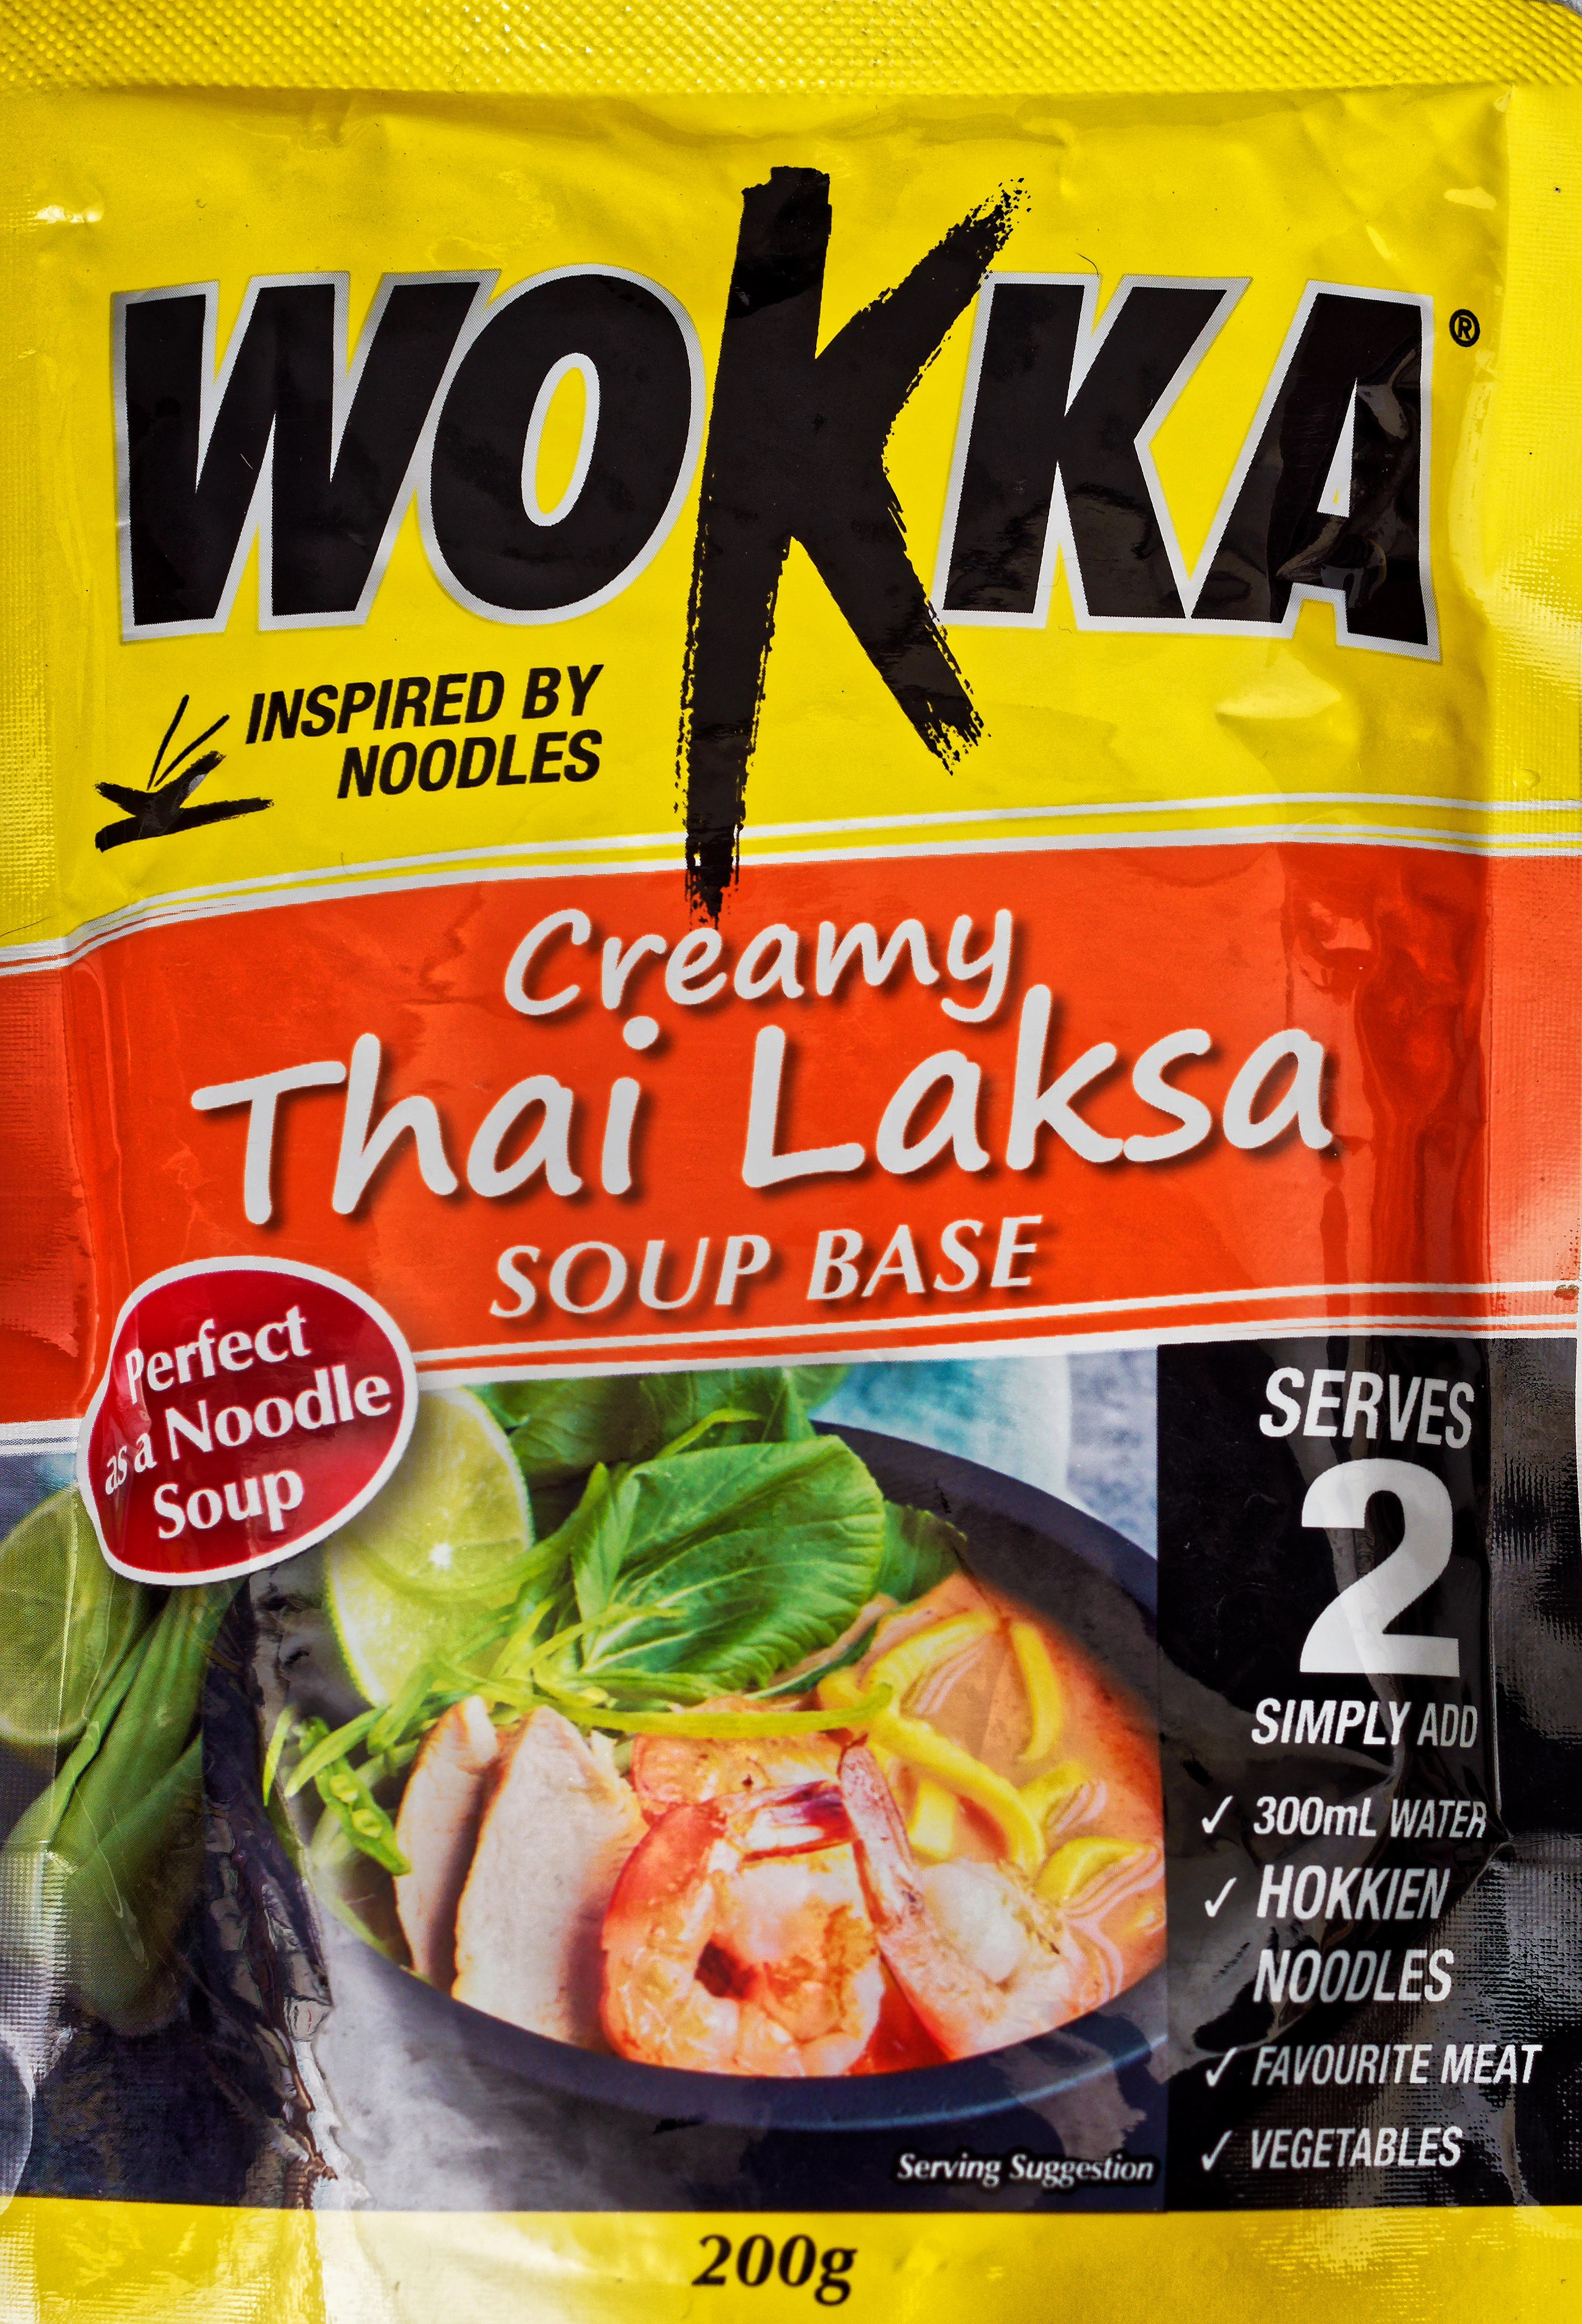 This should be Laksa-3.jpeg.  Is it missing?